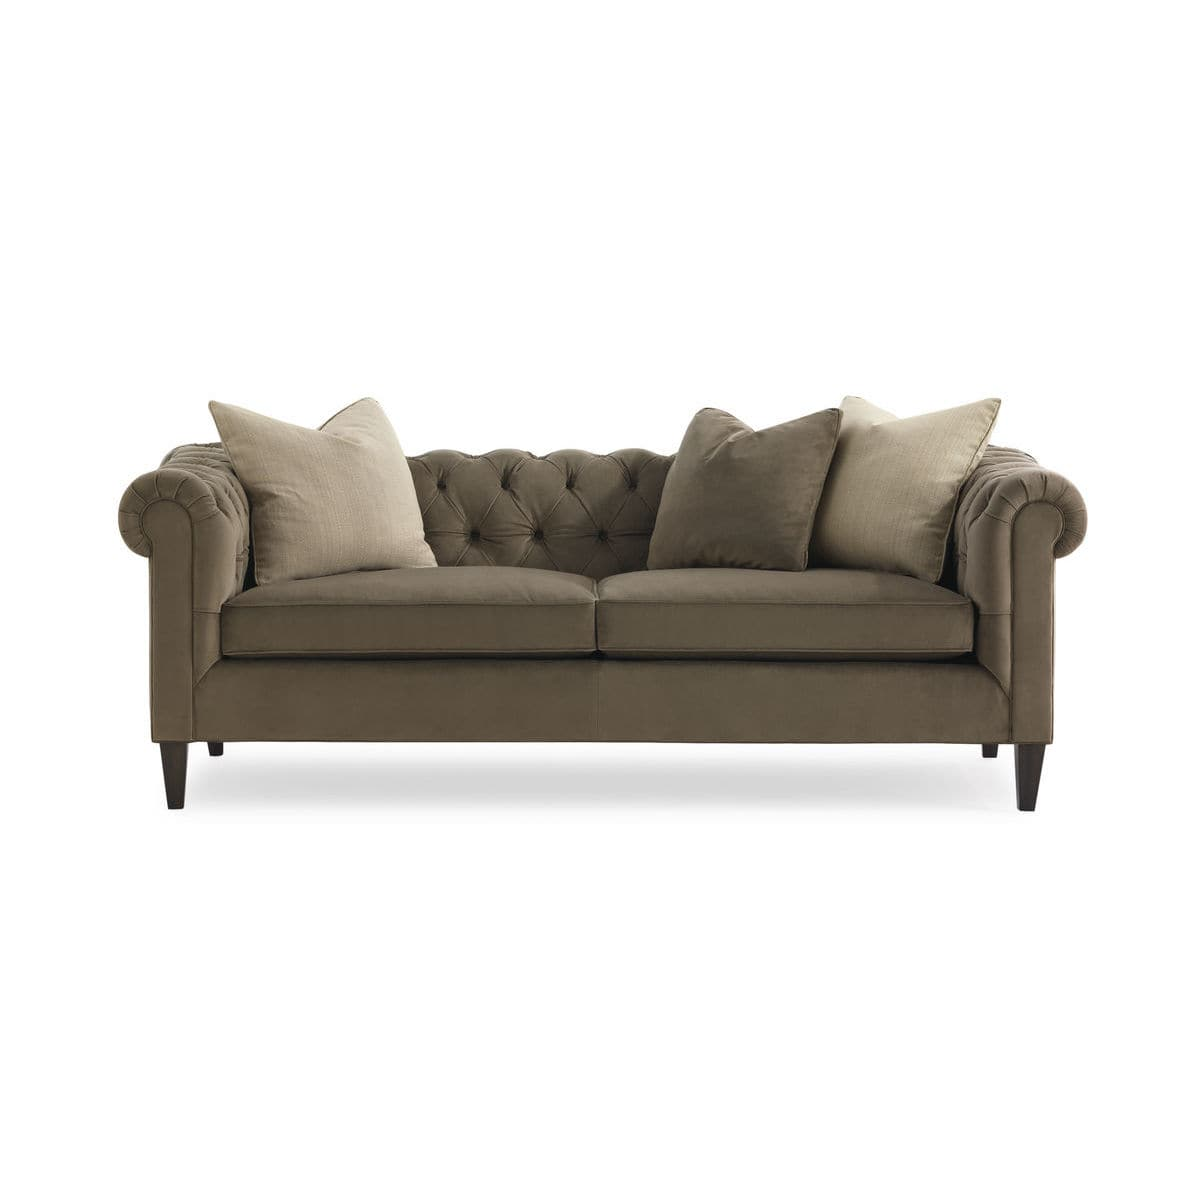 Chesterfield-Sofa / Stoff - MODERN ARTISANS : BELLEVUE - CARACOLE